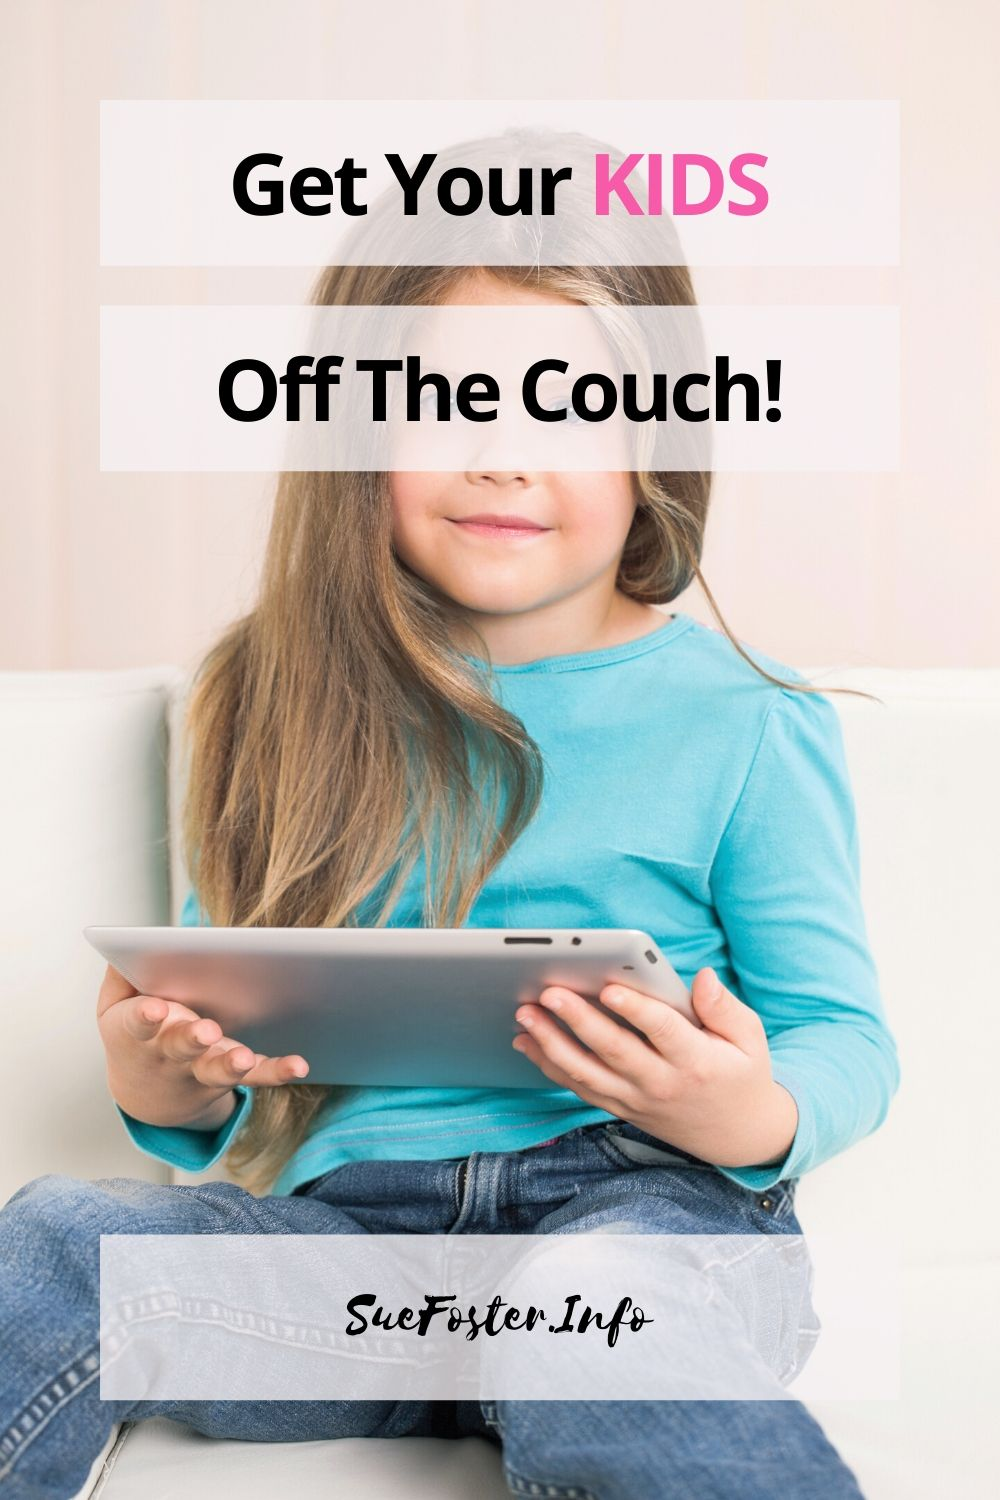 Get your kids off the couch and keep them from gaining too much weight with a bit of exercise.